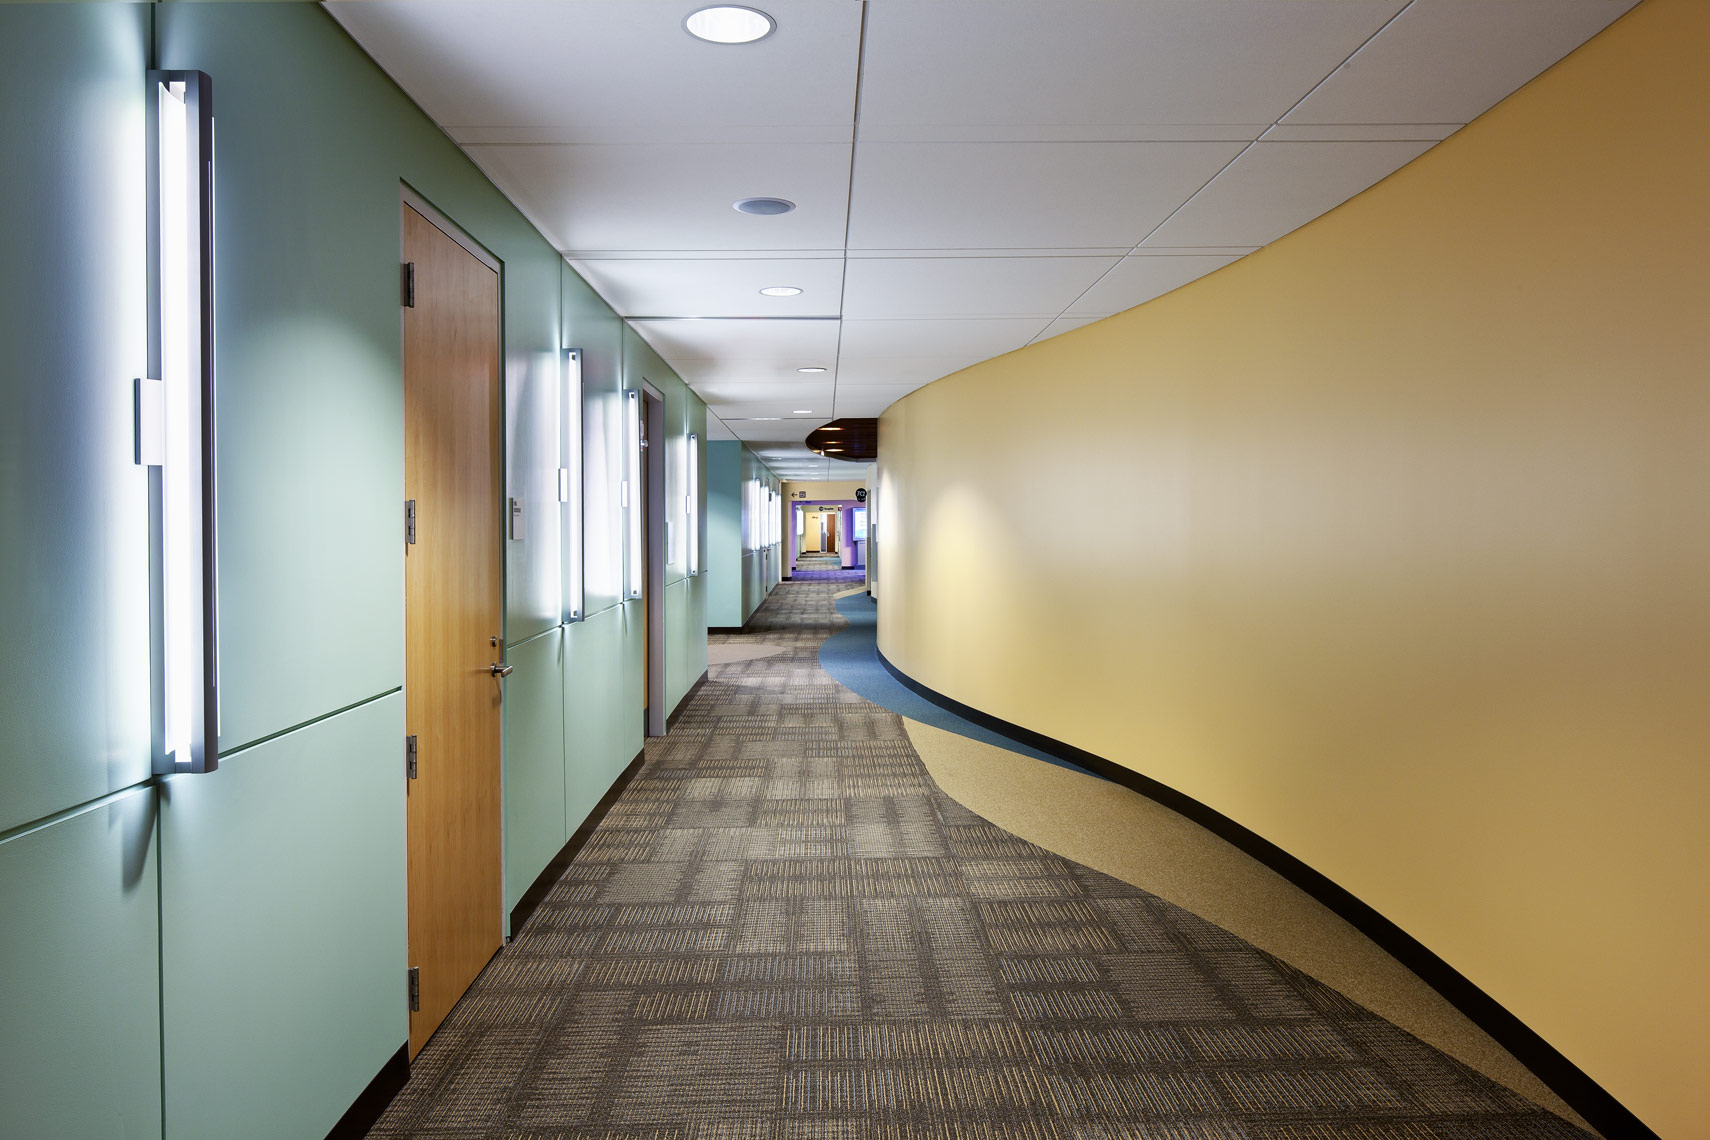 Architectural photograph of a health care facility interior by Dan Poyourow